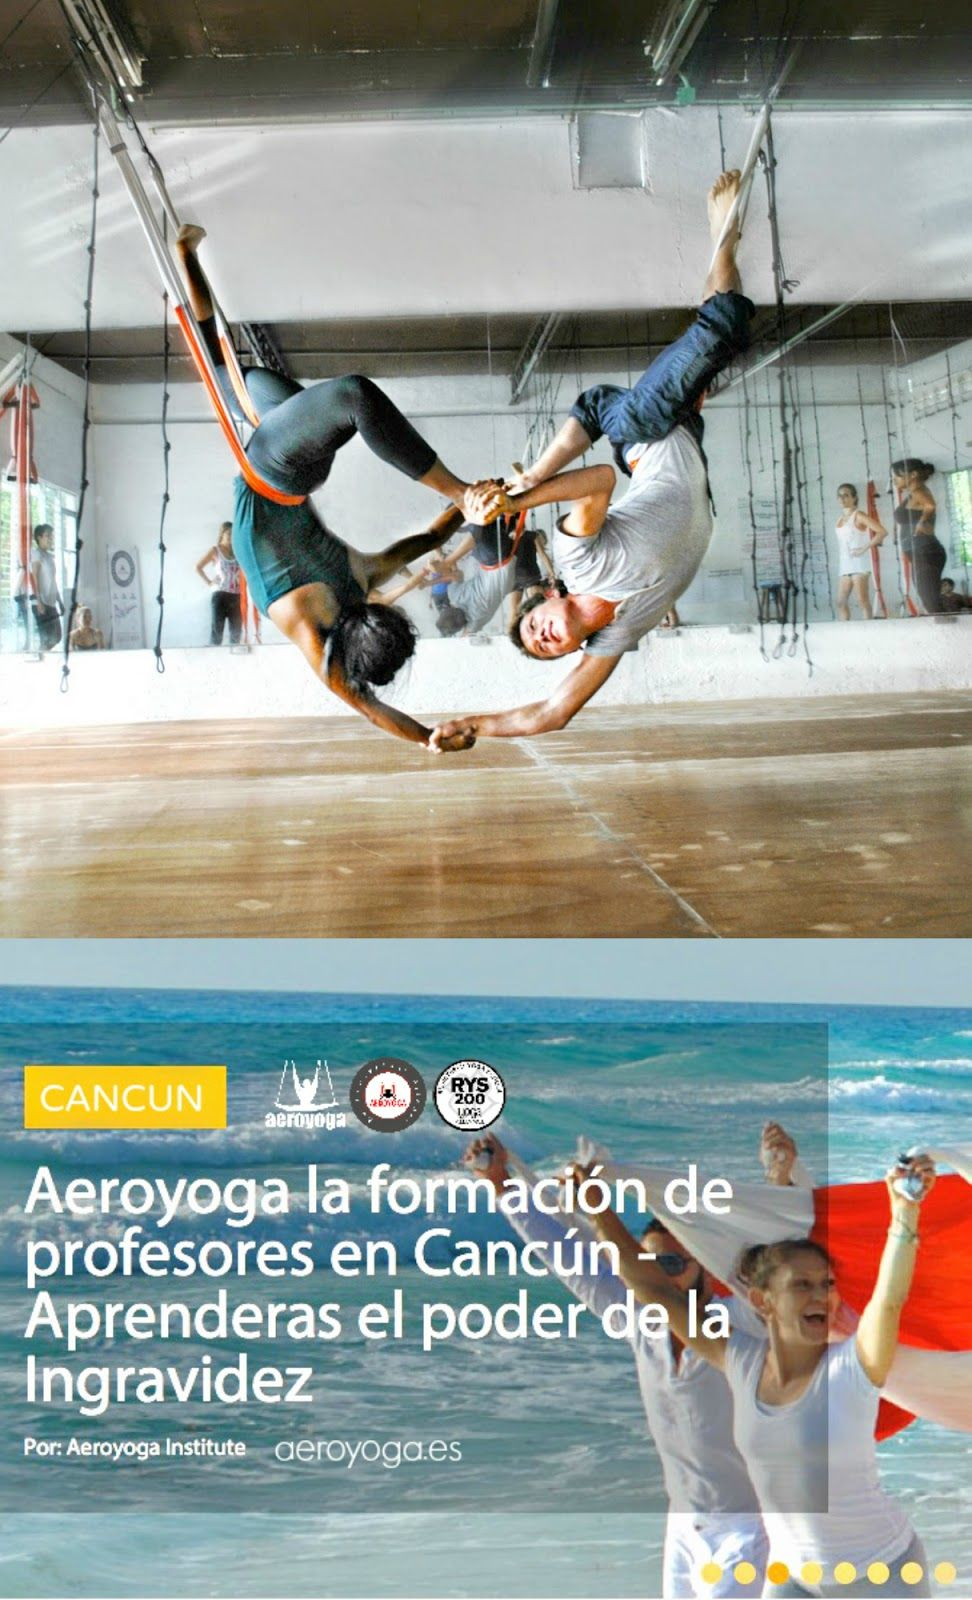 Aerial Yoga teacher Training, #wellness #ejercicio #moda #belleza #tendencias #fitness #yogaaereo #pilatesaereo #bienestar #aeroyogamexico #aeroyogabrasil #yogaaerien #aeropilates #aeroyoga #aeropilatesbrasil #aeropilatesmadrid #aeropilatesmexico #weloveflying #aerial #yoga #pilates #aero #mexicodf #medicina #salud